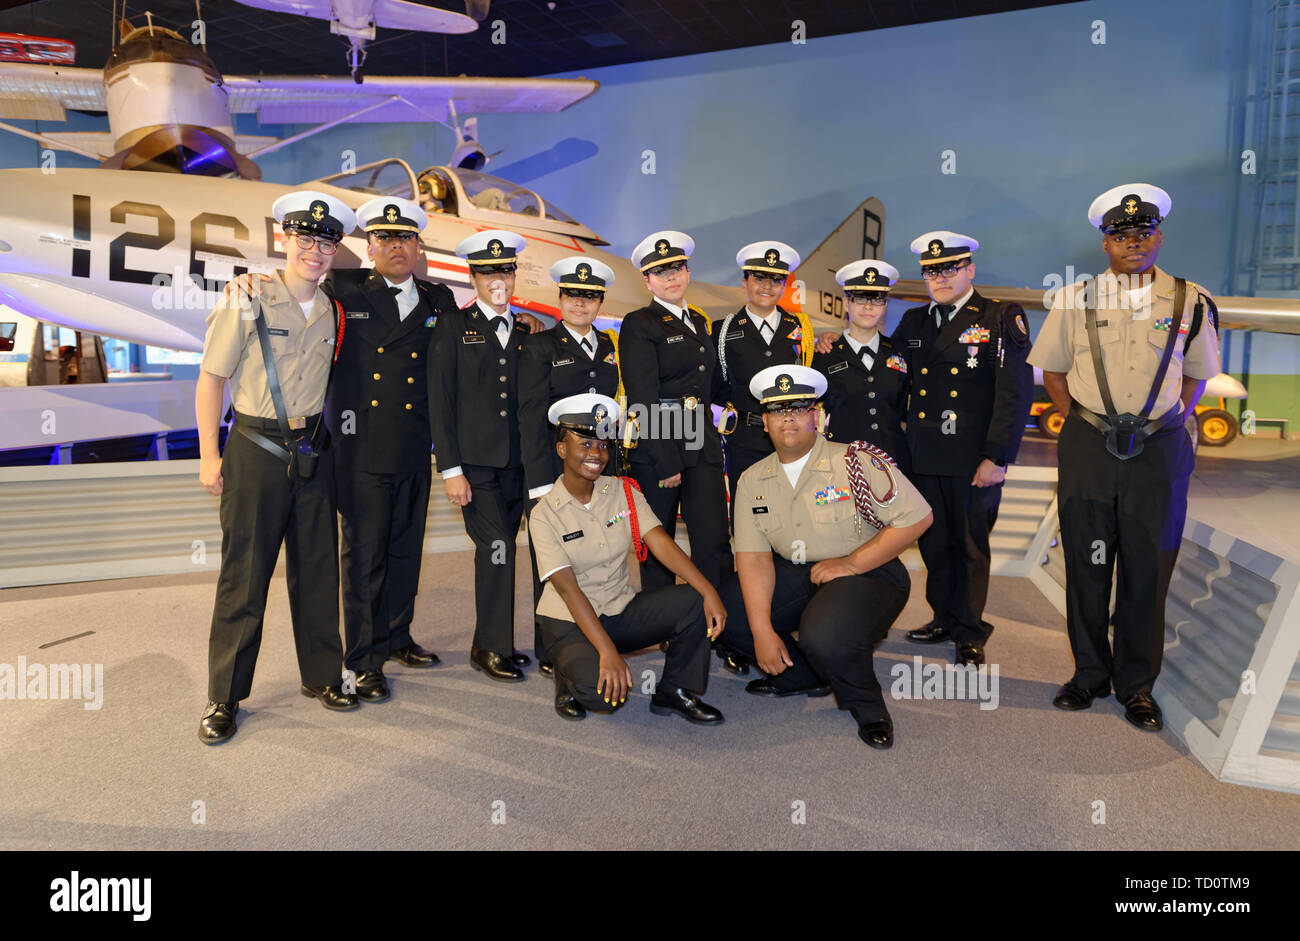 Garden City, New York, USA. 6th June, 2019. Freeport High School Navy Junior ROTC cadets wearing uniforms and about to participate at Apollo at 50 Anniversary Dinner at Cradle of Aviation Museum, pose for photo in front of historic aircraft at museum exhibit. Credit: Ann Parry/ZUMA Wire/Alamy Live News - Stock Image